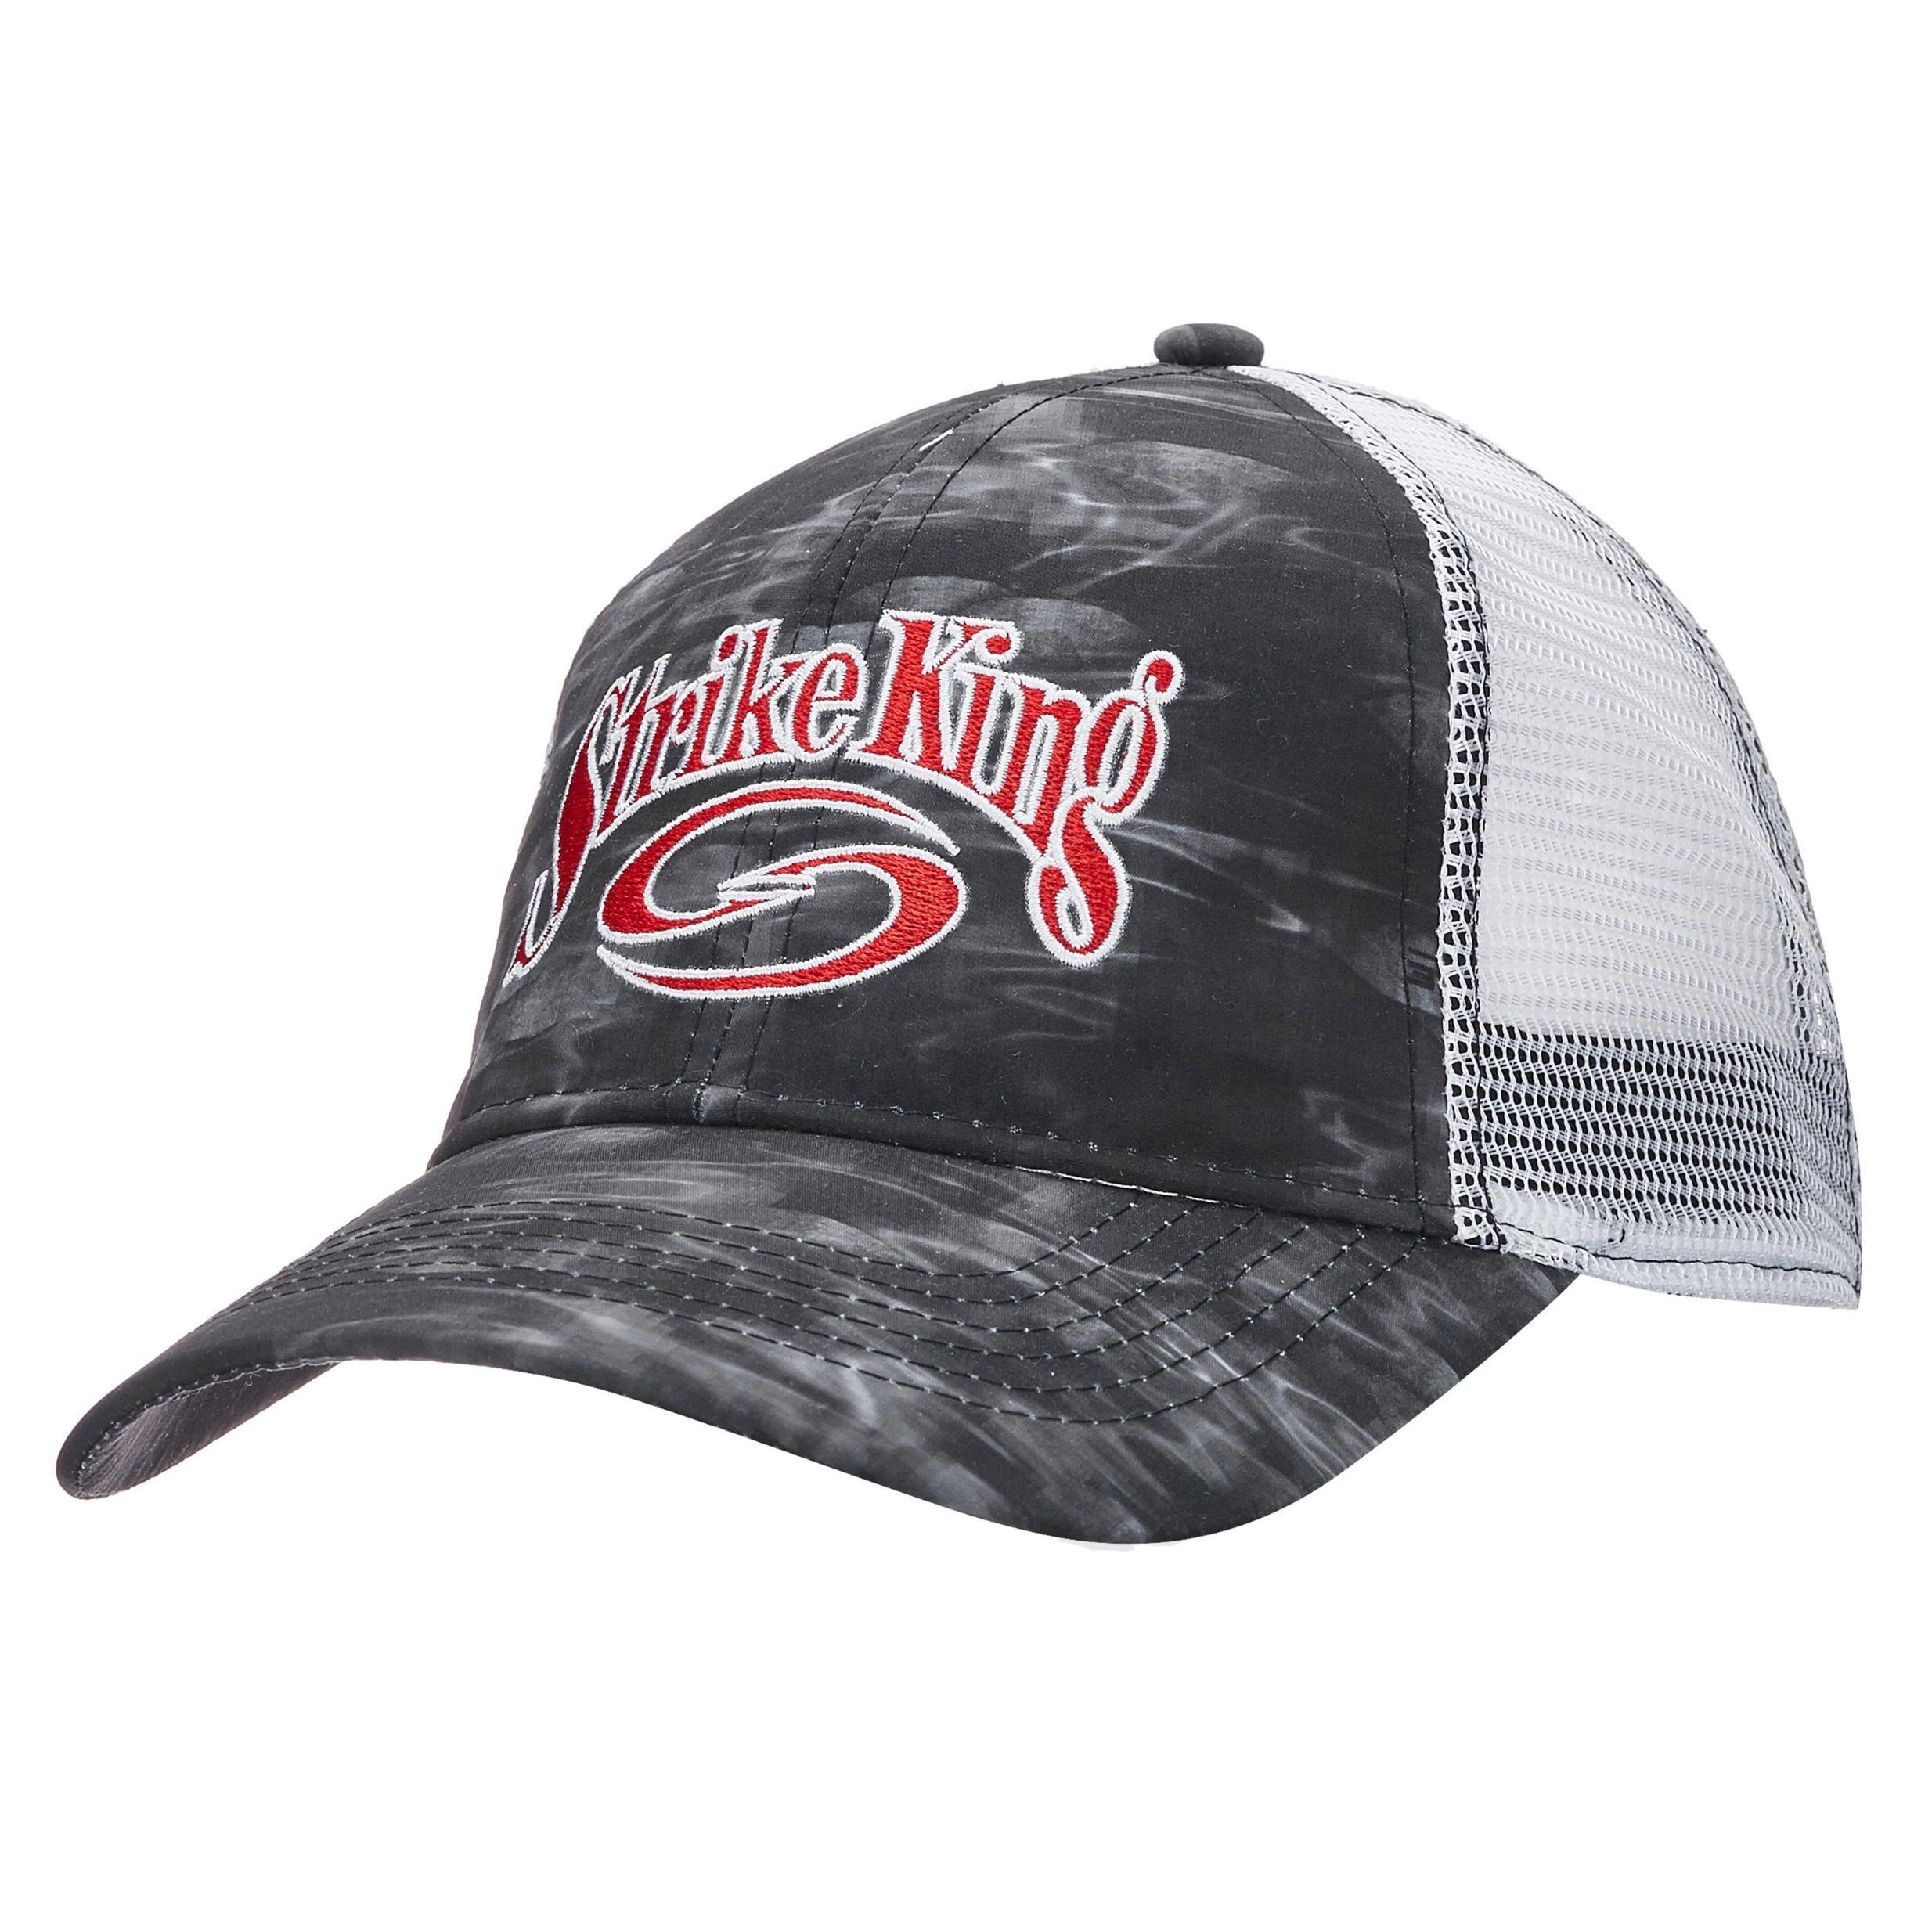 Strike King Lures Trucker Cap - Scale Tech Body/White Mesh